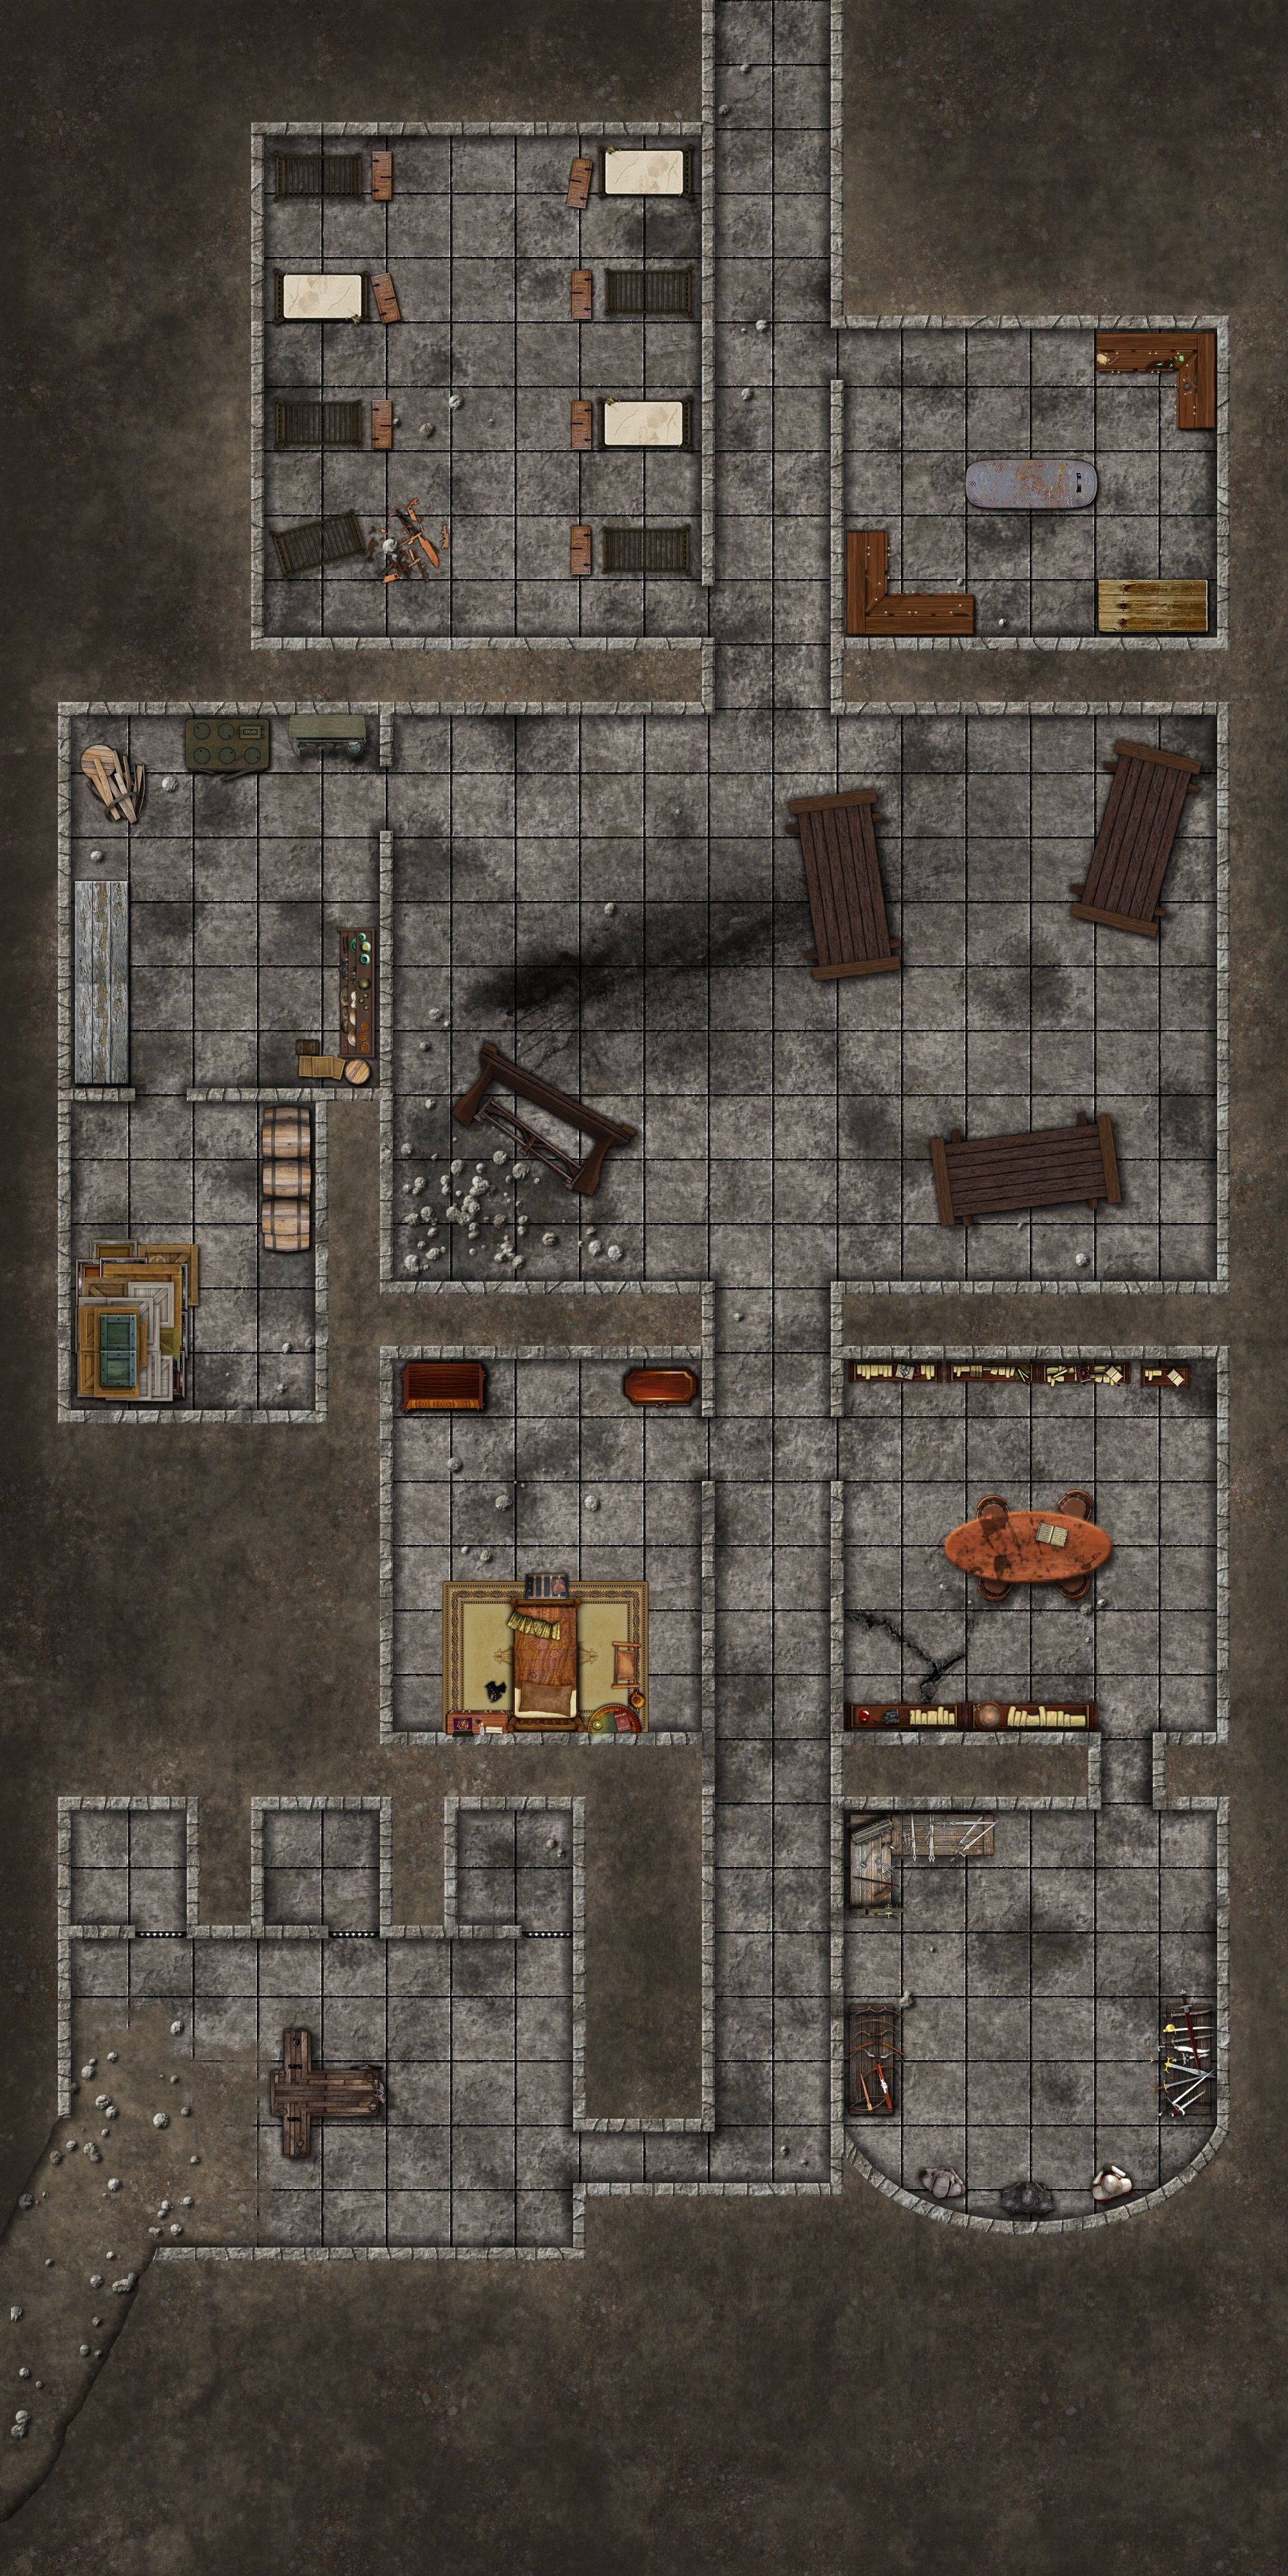 pin by david vaughn on dungeons and dragons maps in 2018